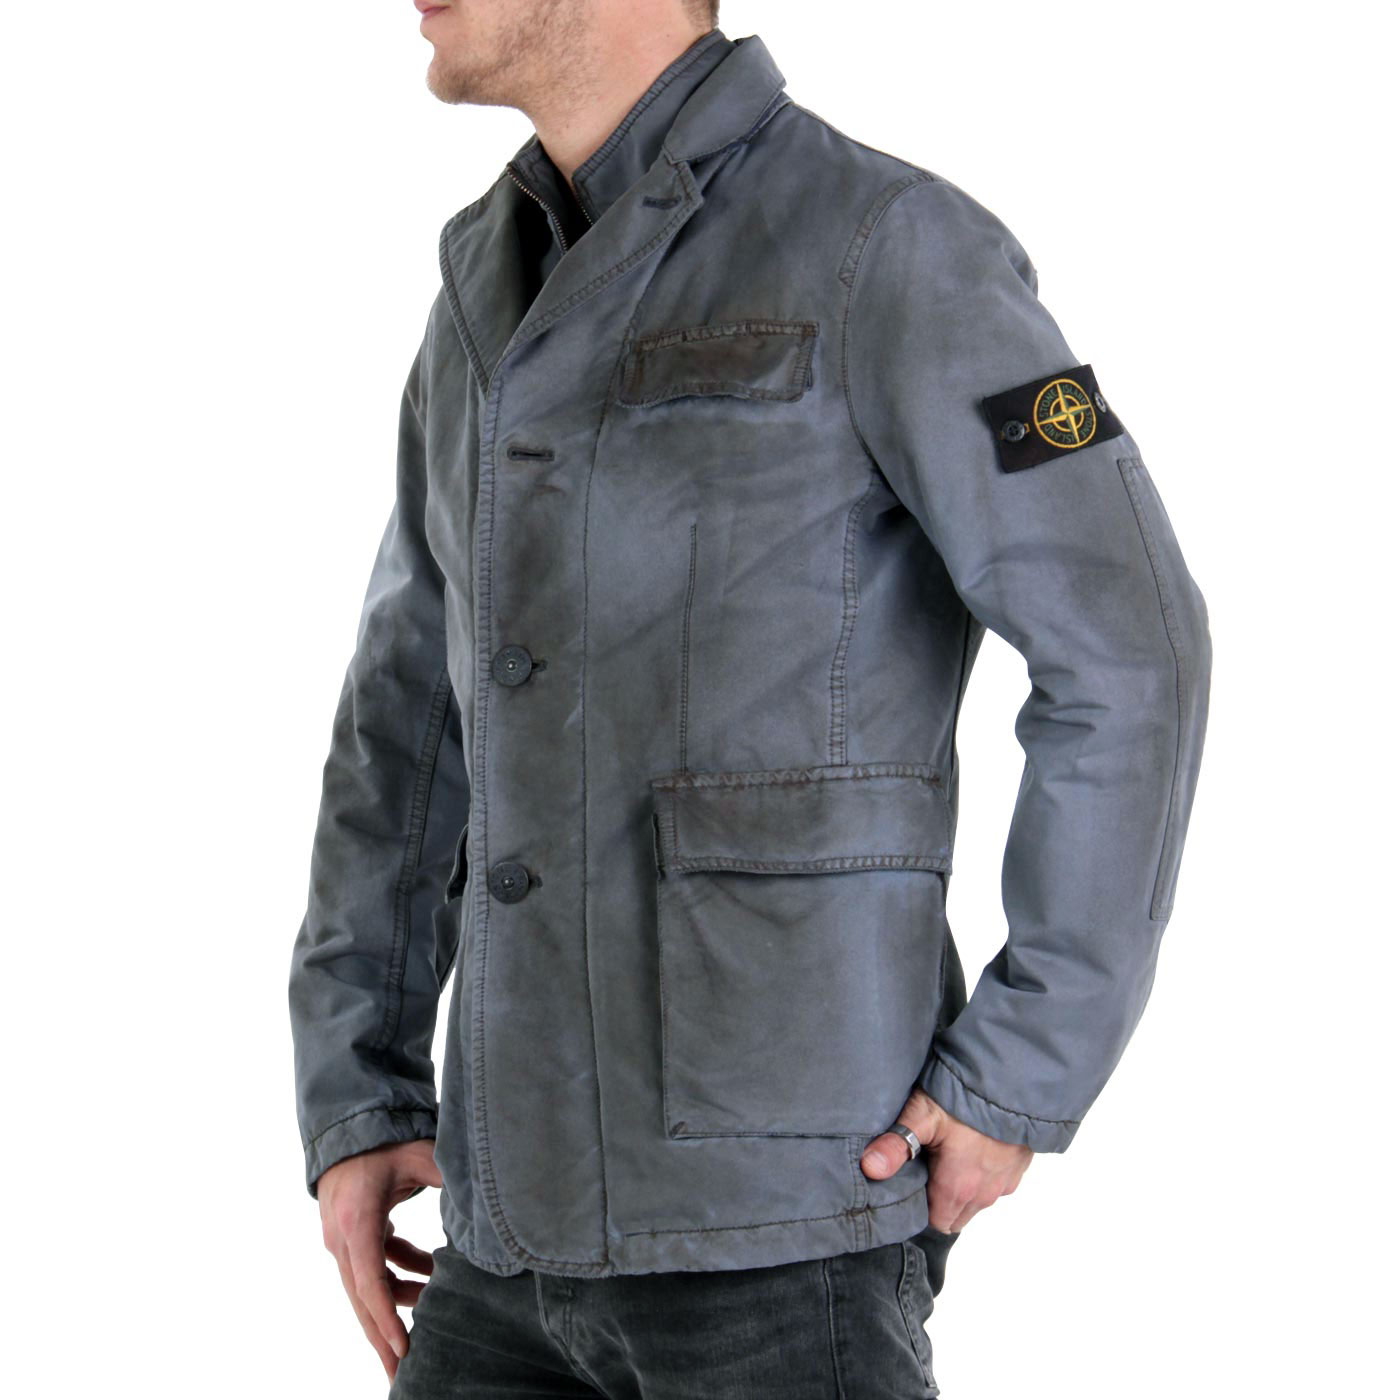 stone island herren winter jacke vintage grey a0550 2. Black Bedroom Furniture Sets. Home Design Ideas